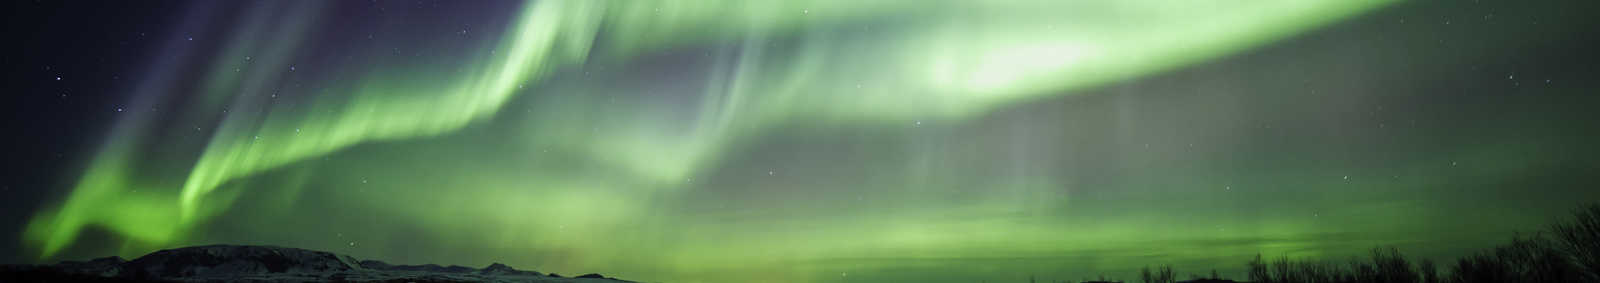 Northern lights (Aurora Borealis) over Iceland